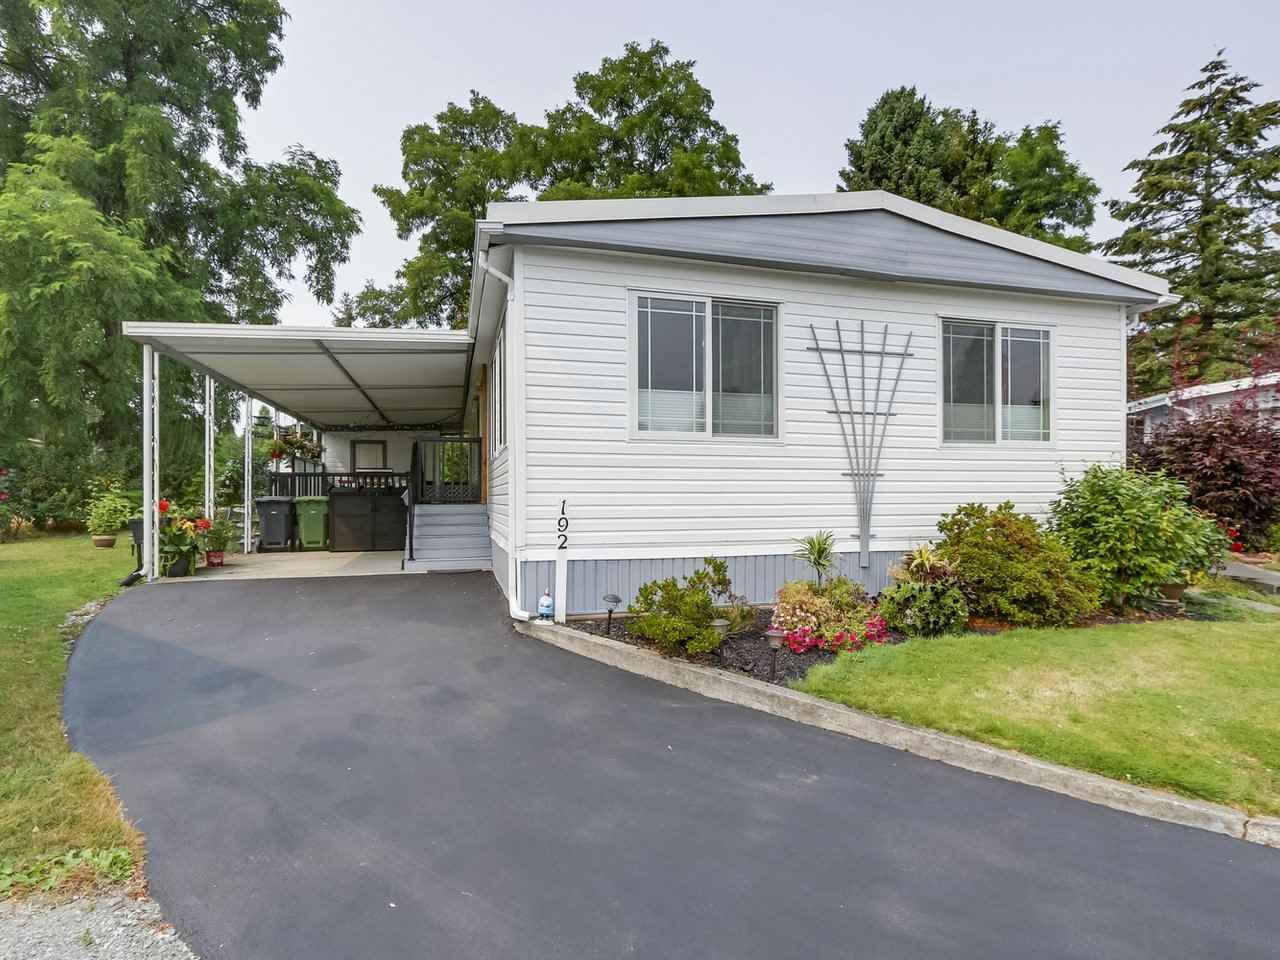 Main Photo: 192 1840 160 STREET in : White Rock Manufactured Home for sale : MLS®# R2297390